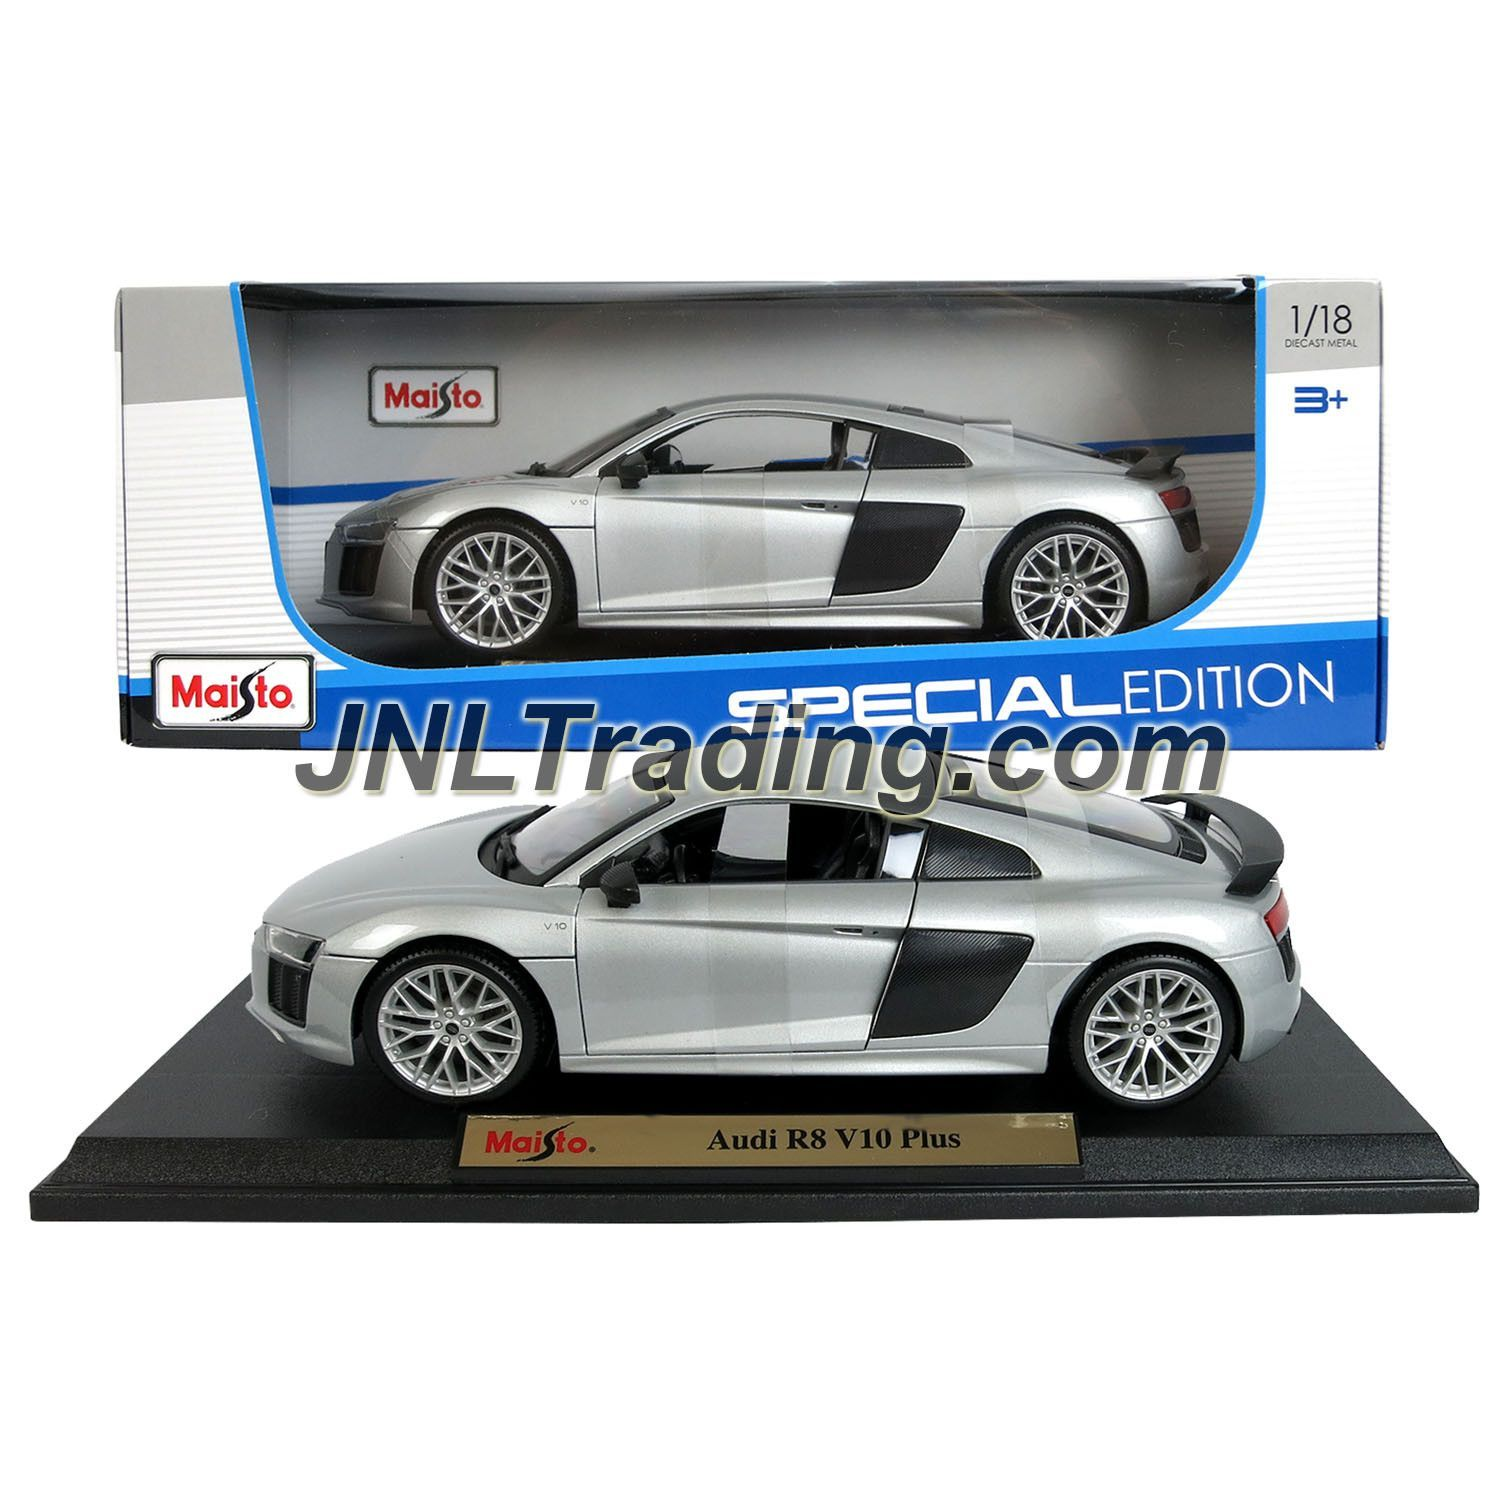 Maisto special edition series 1 18 scale die cast car set silver mid engine